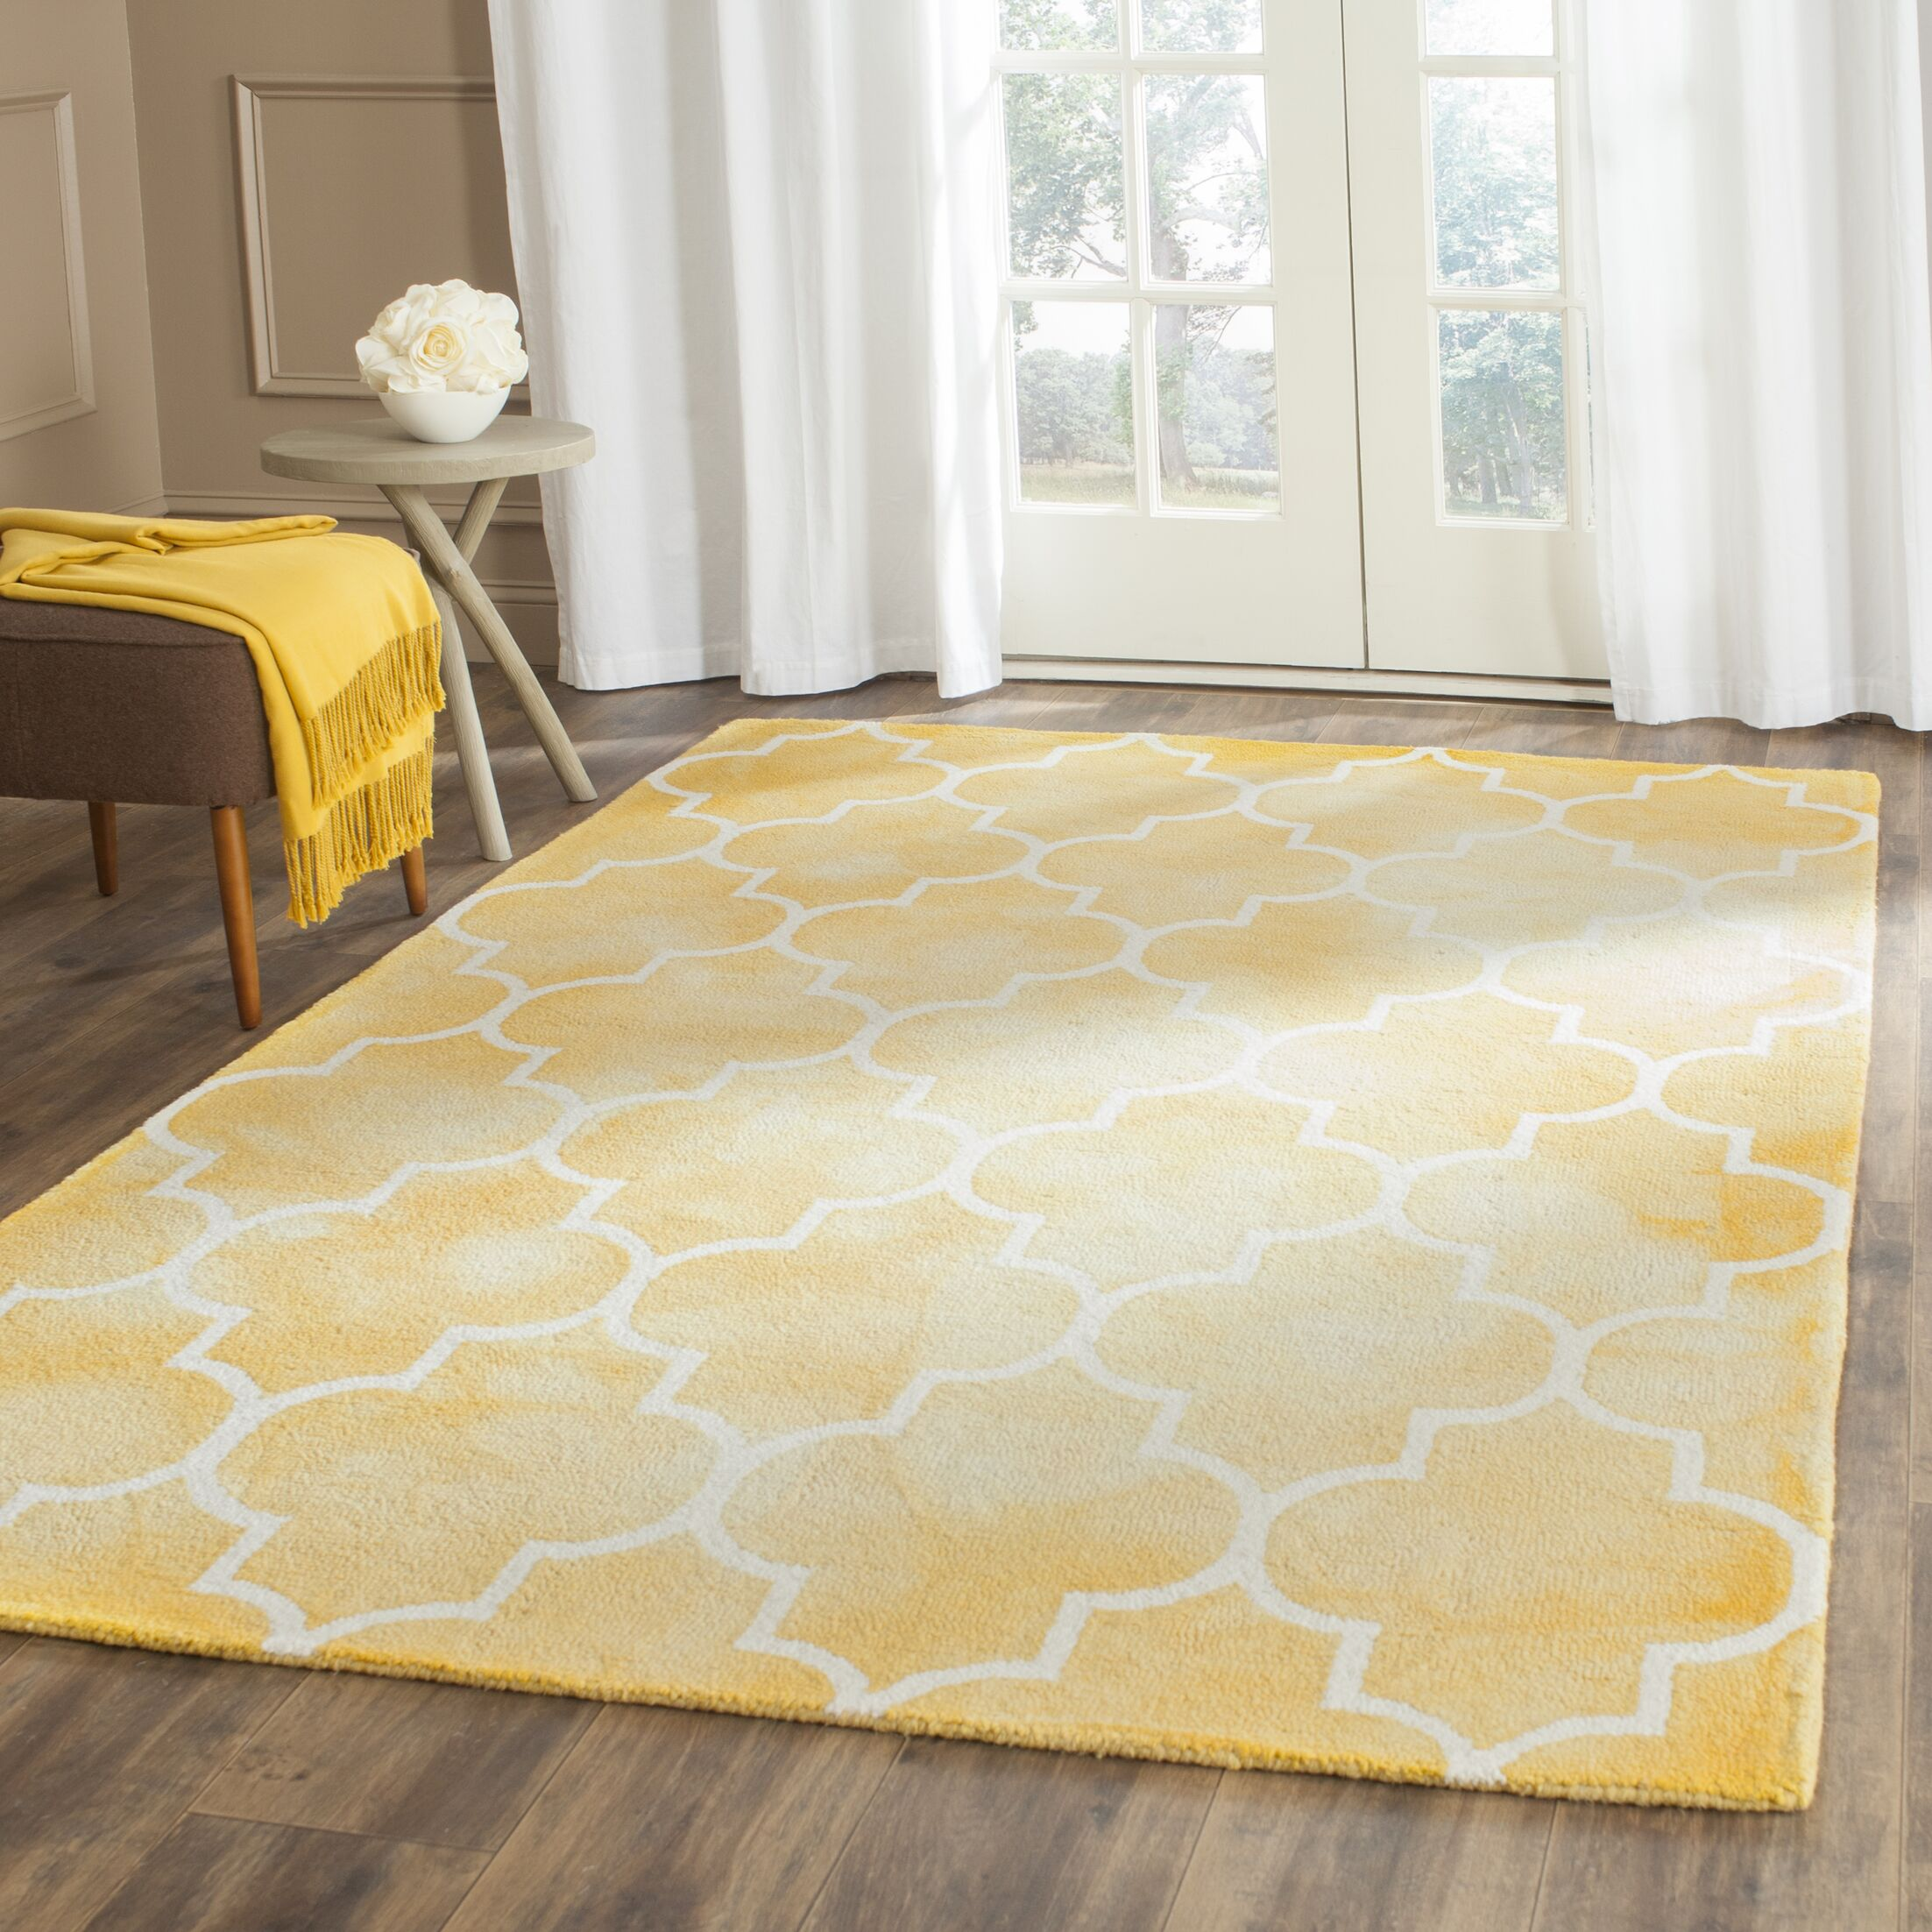 Handmade Yellow/White Area Rug Rug Size: Rectangle 3' x 5'